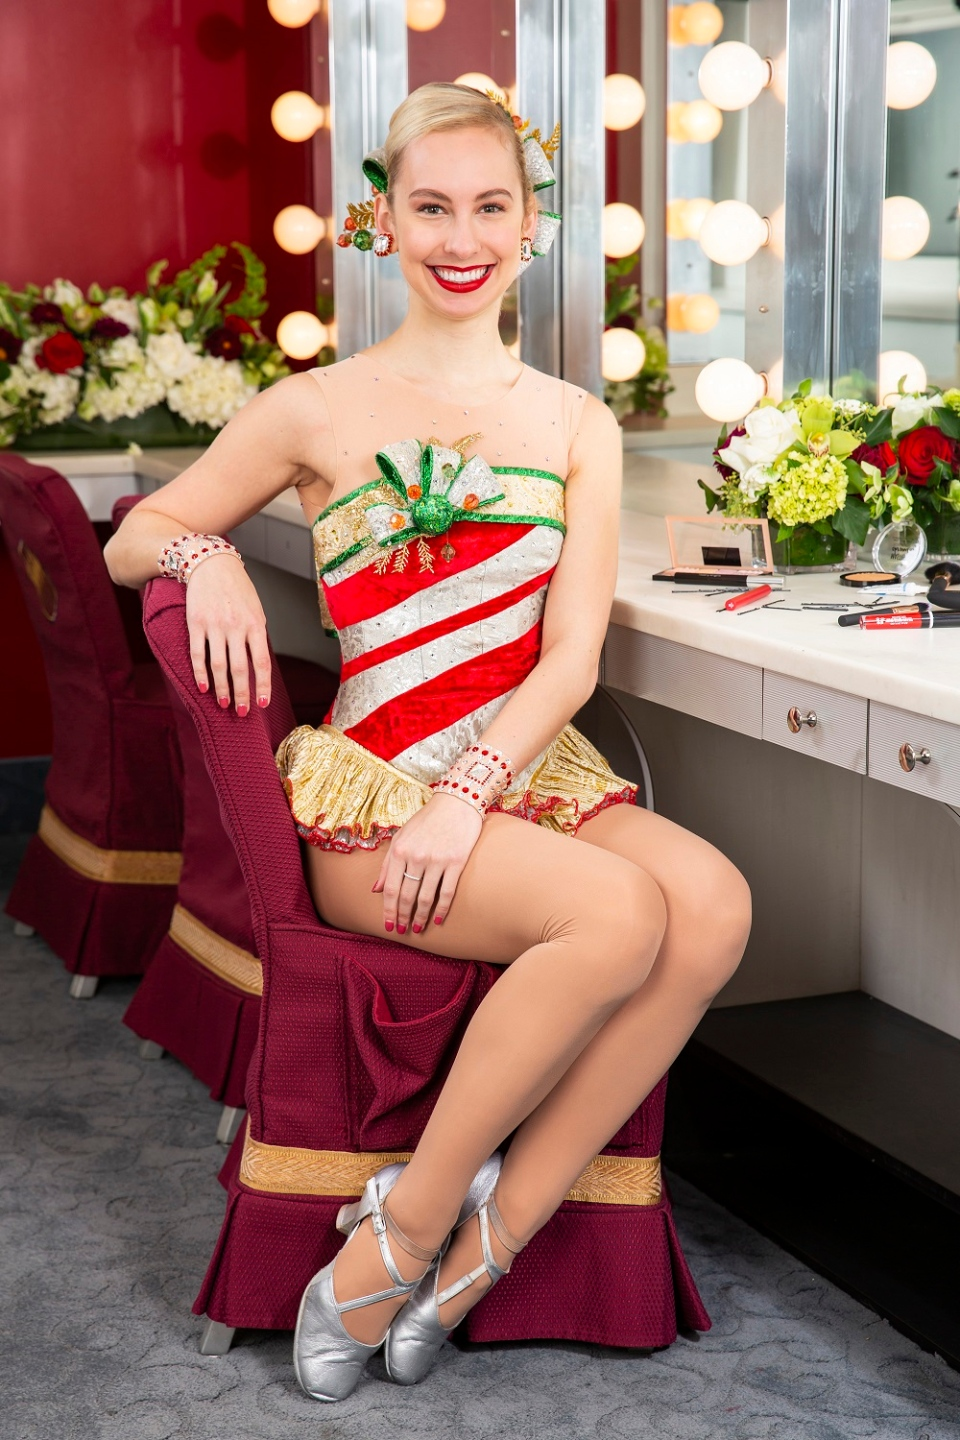 Katie Forss, a third-year Rockette from Edmonton, is seen in a Radio City Music hall dressing room. (Courtesy MSG)